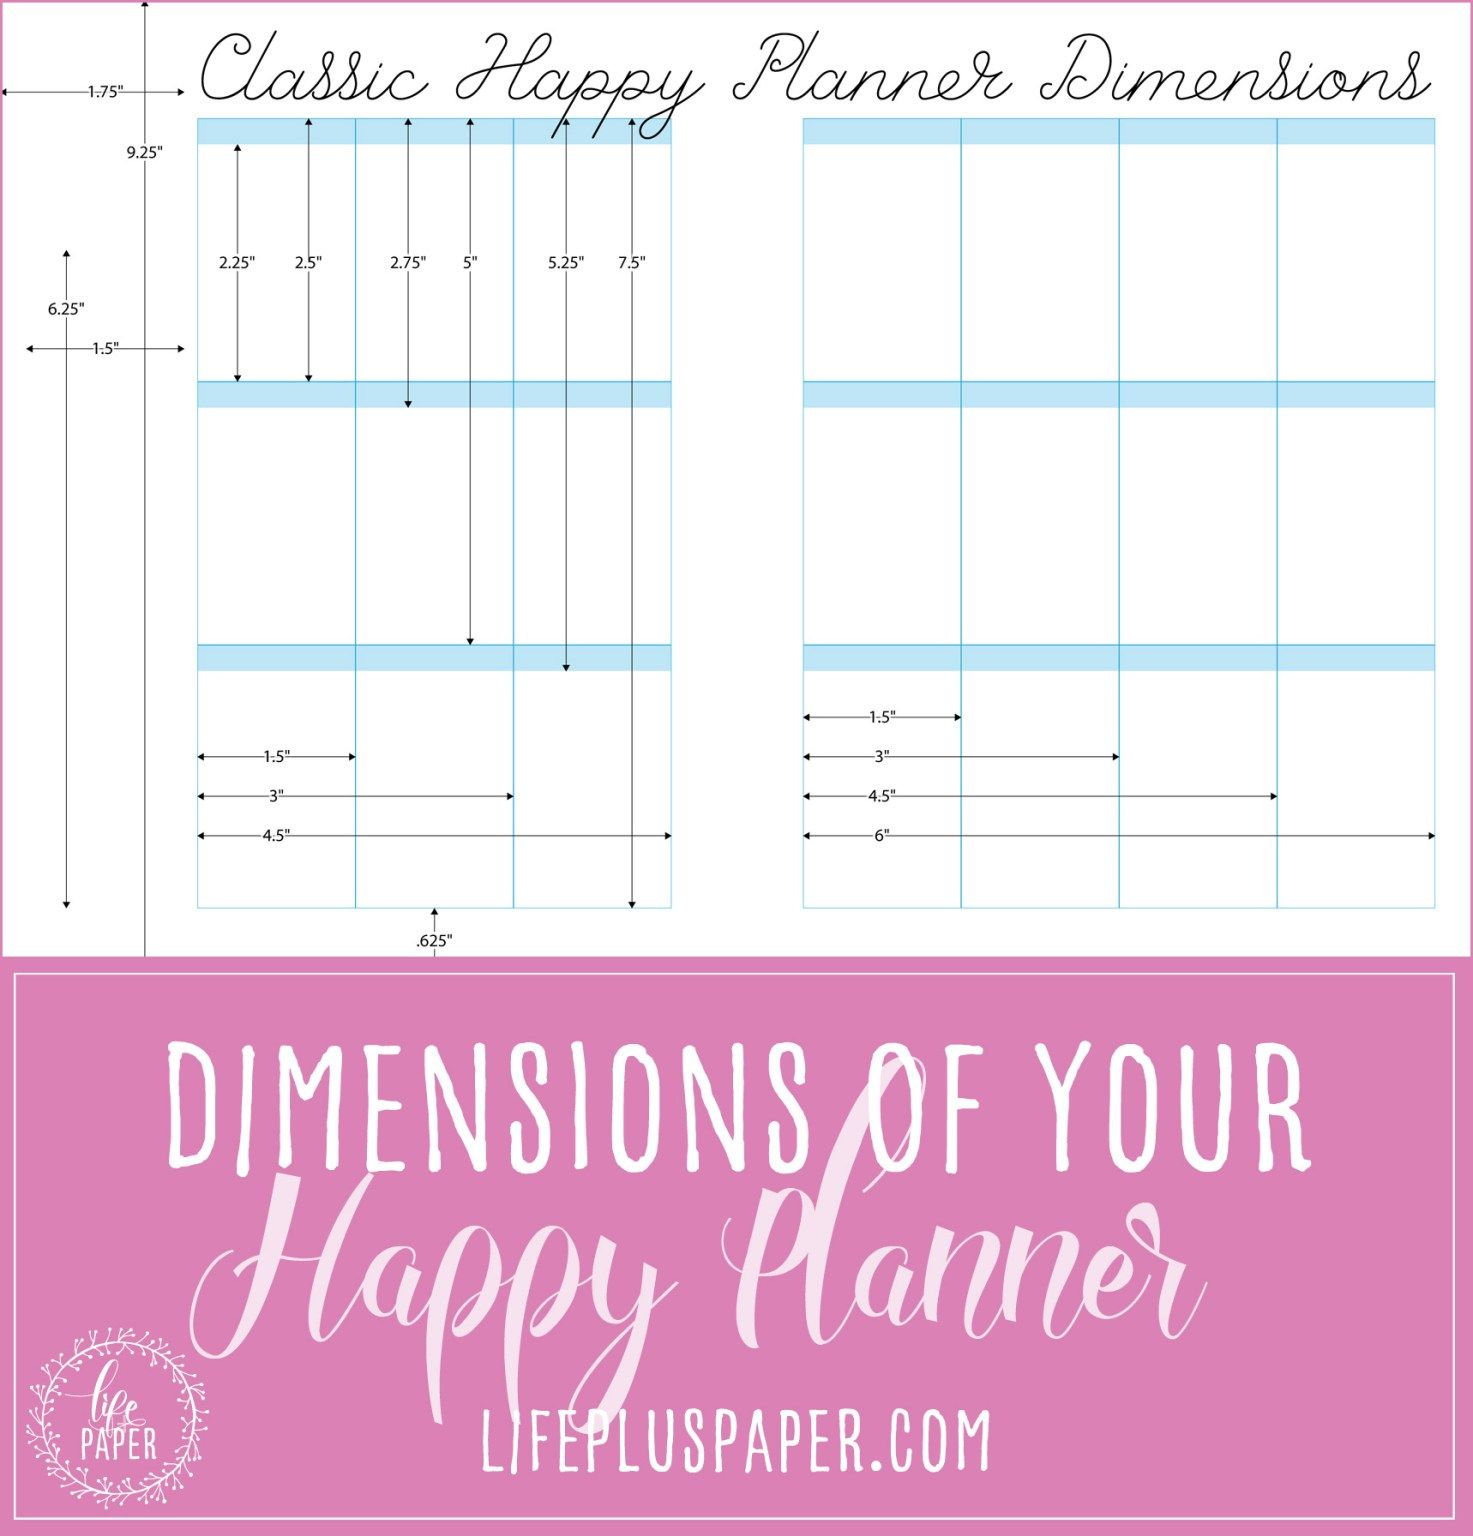 Happy Planner Dimensions - Layout dimensions for both the classic and big happy planner